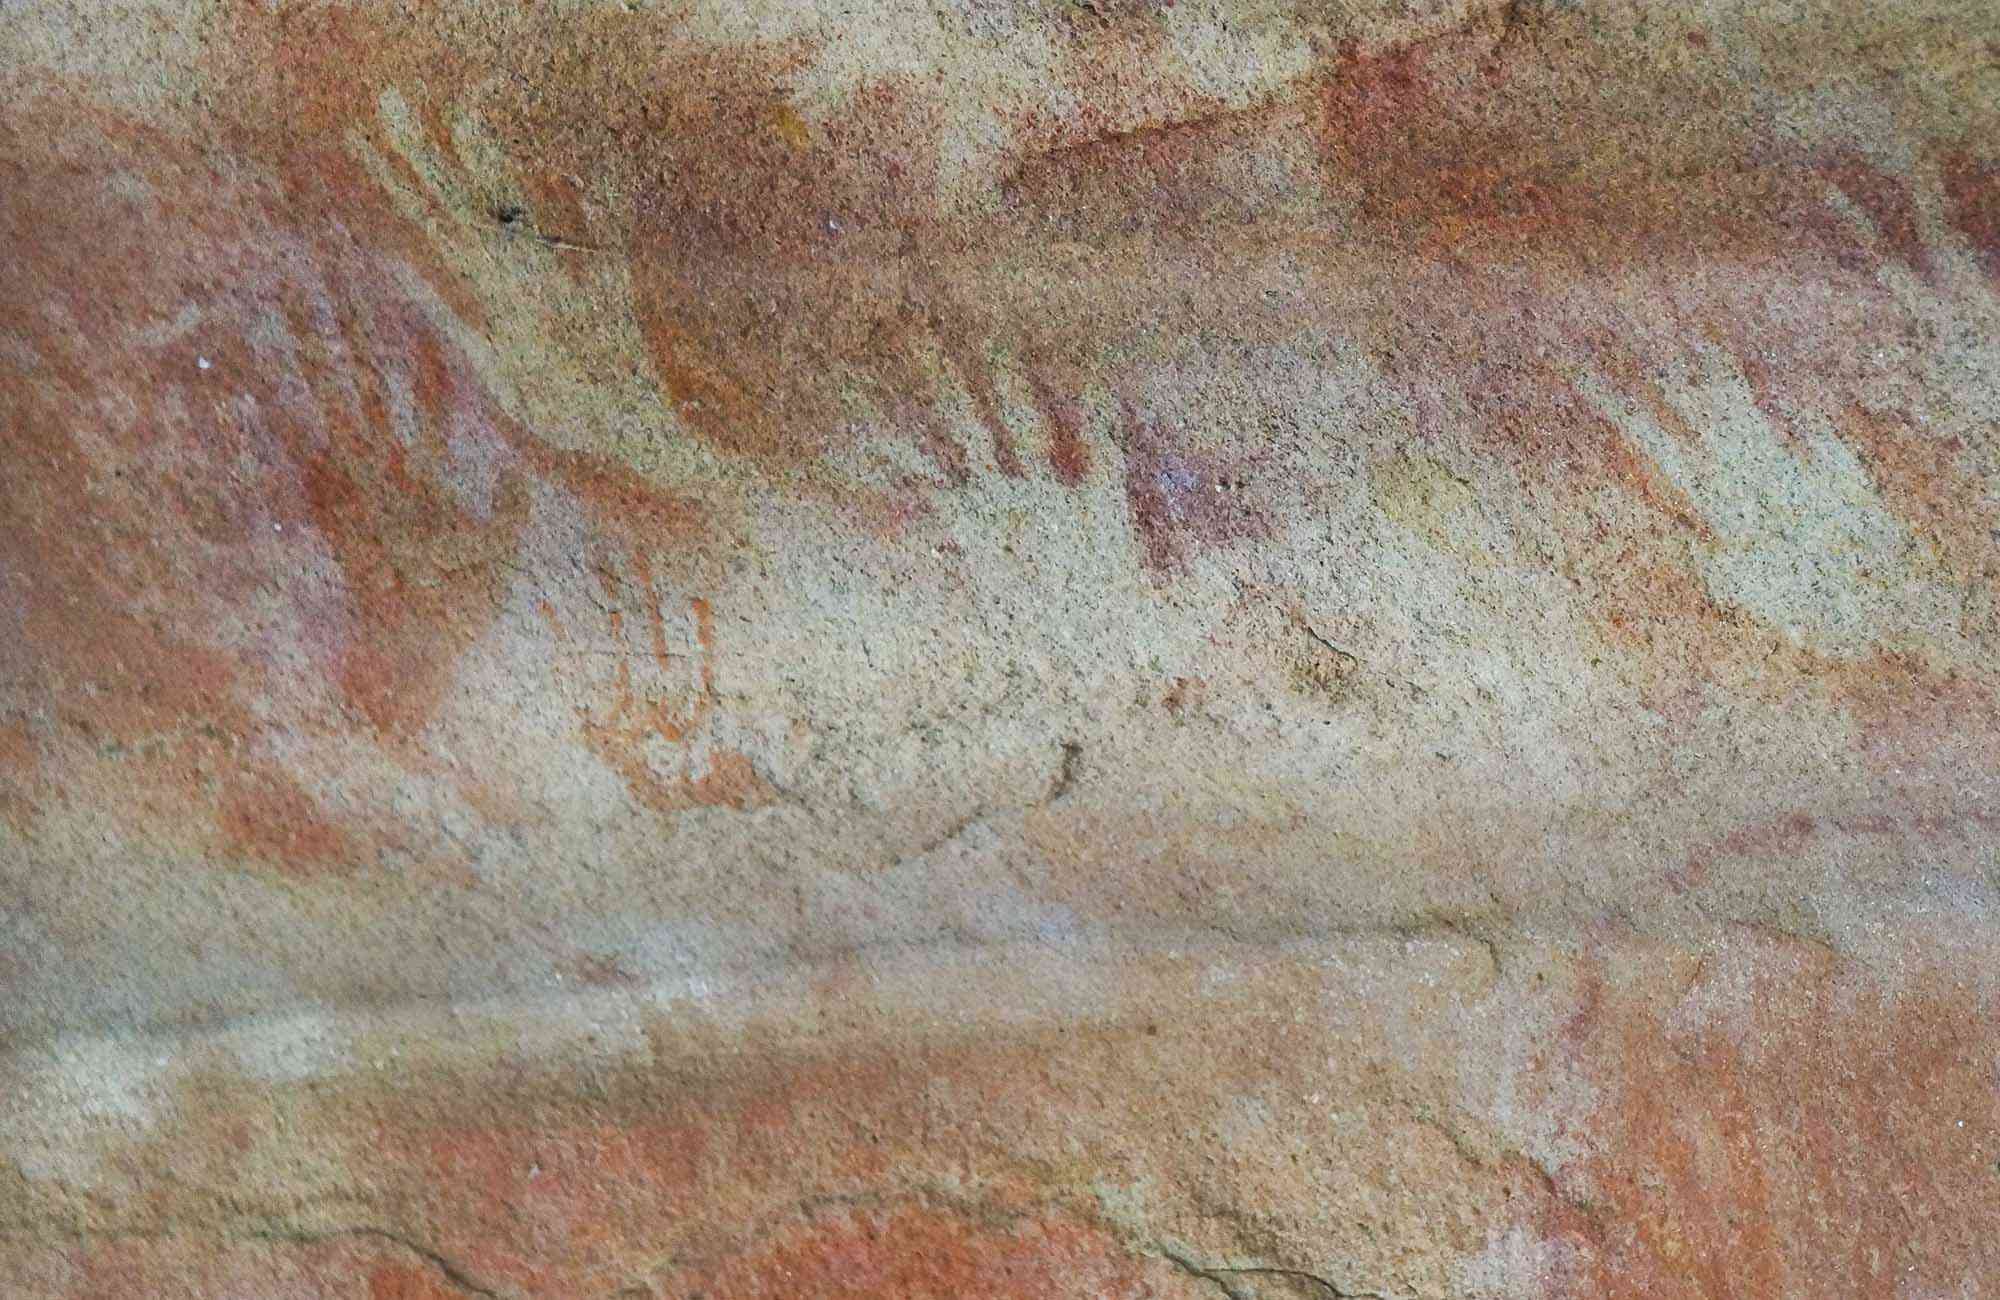 Reddish rock wall with hands printed on it